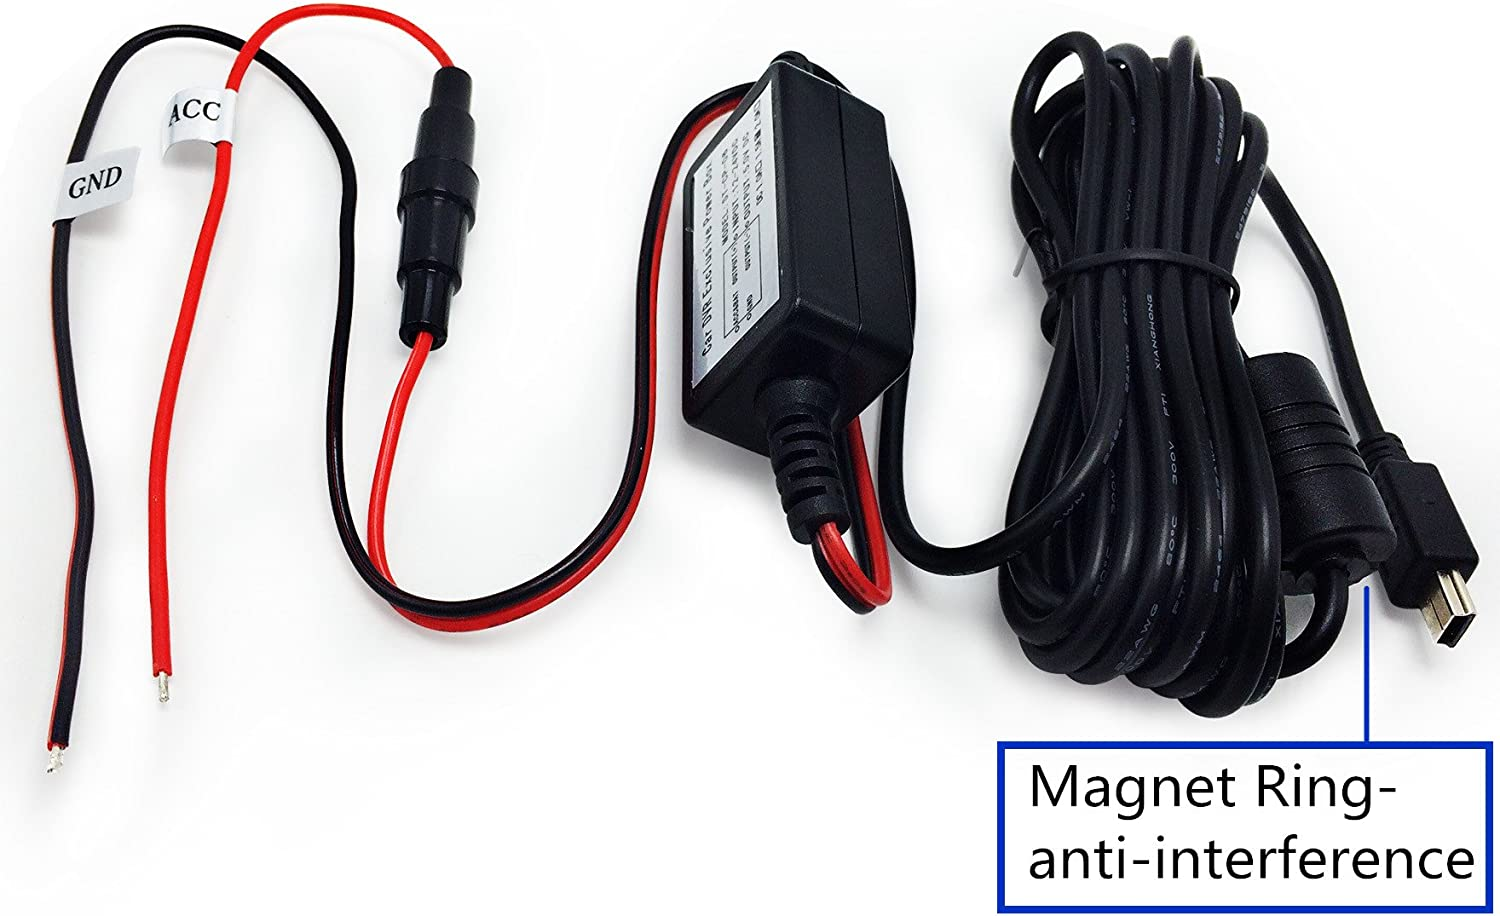 Arpenkin HardWire Kit Mini USB 12V to 5V Magnet Ring Anti-Interferance Power Adapter Cord Cable Mini USB GT680W Compatible for Rexing V1 G1WH A119 A119S A118 A118C A118C2 B40 G1W G1W-C